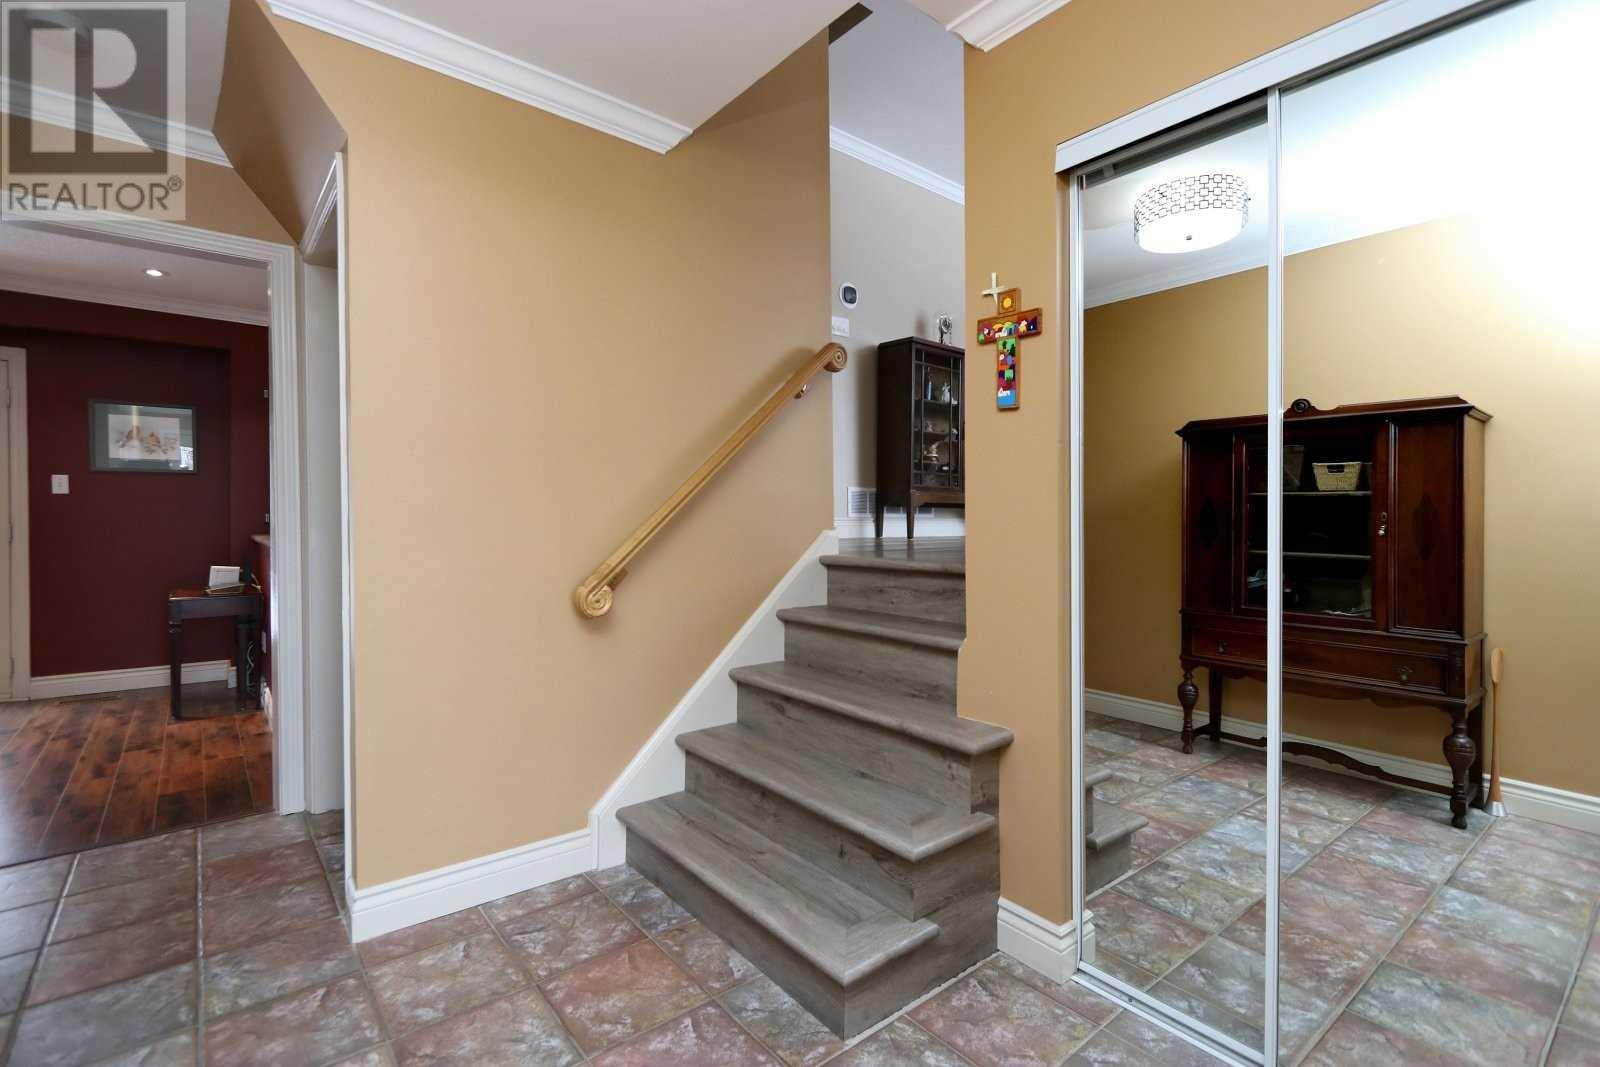 2524 Windjammer Rd, Mississauga, Ontario  L5L 1H9 - Photo 3 - W4675885